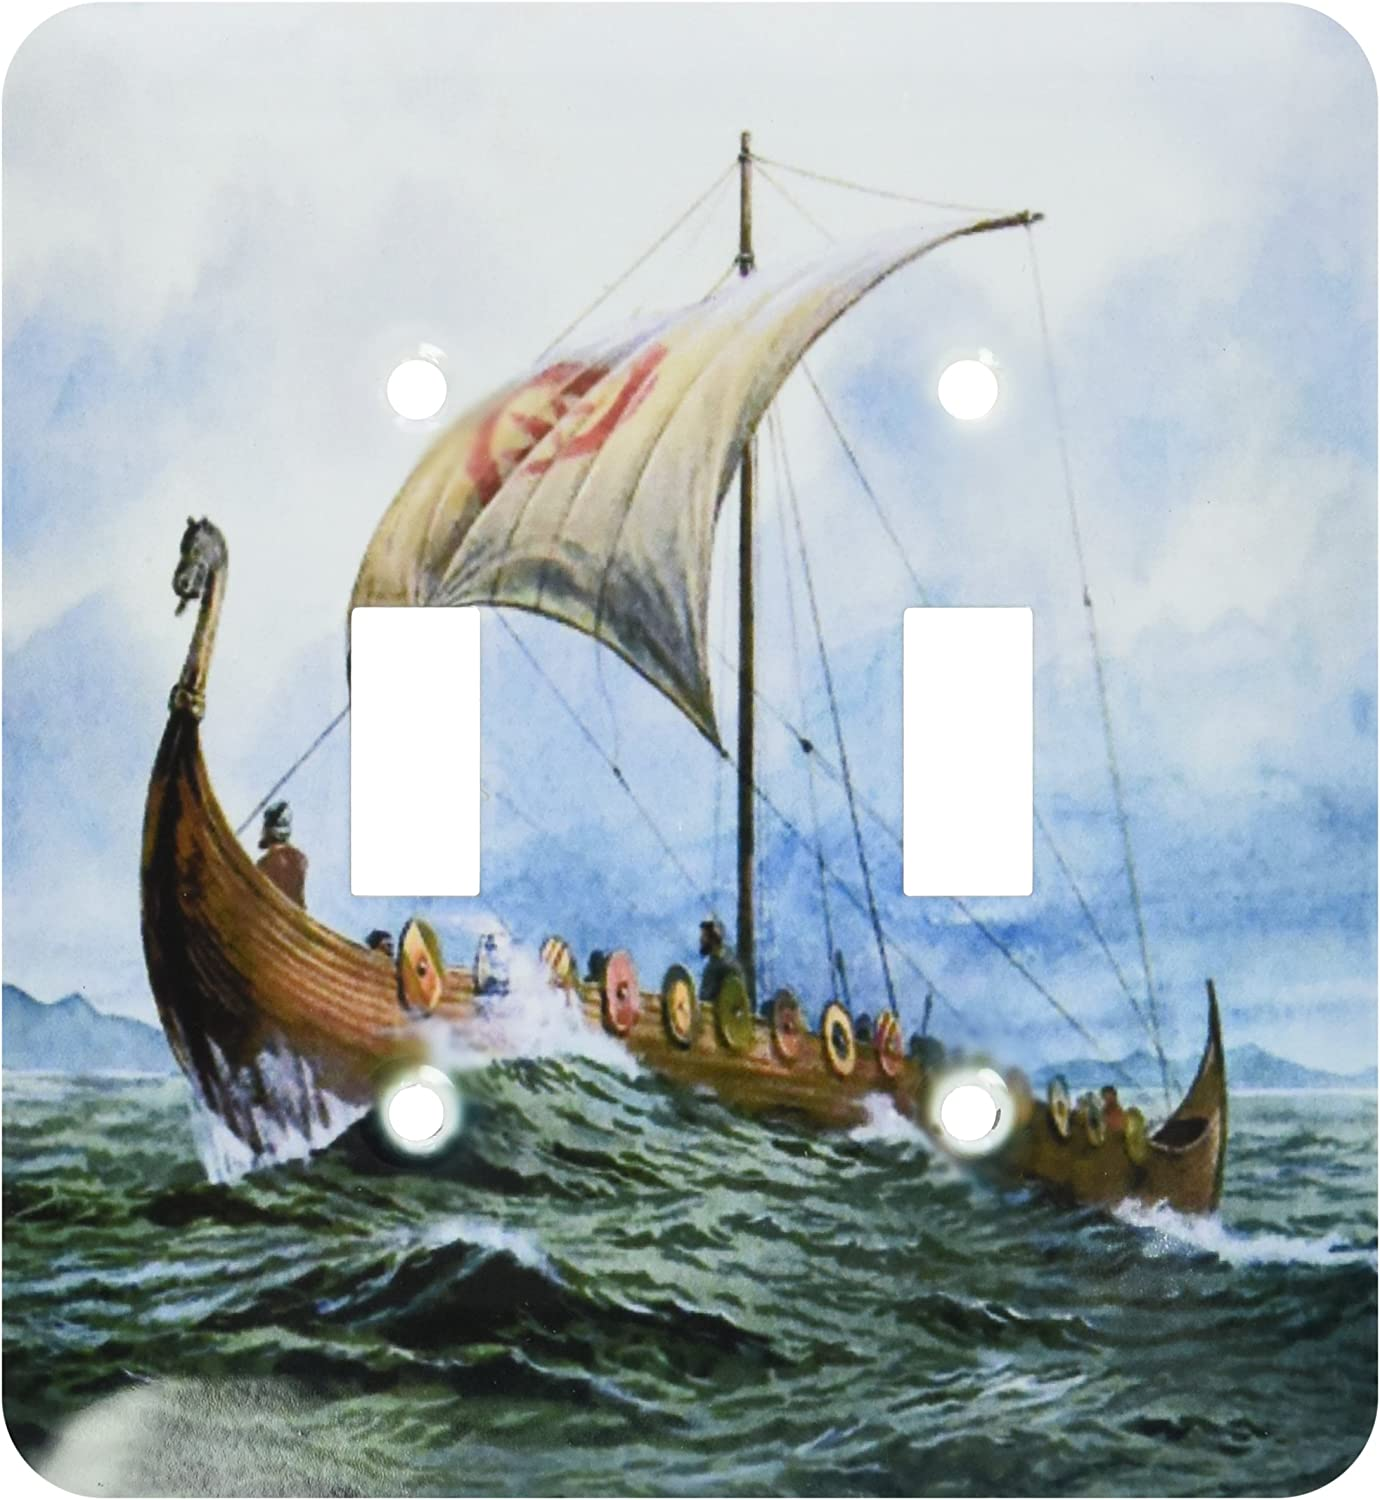 3drose Lsp 98640 2 Viking Ship Jpg Double Toggle Switch Multicolor Switch Plates Amazon Com